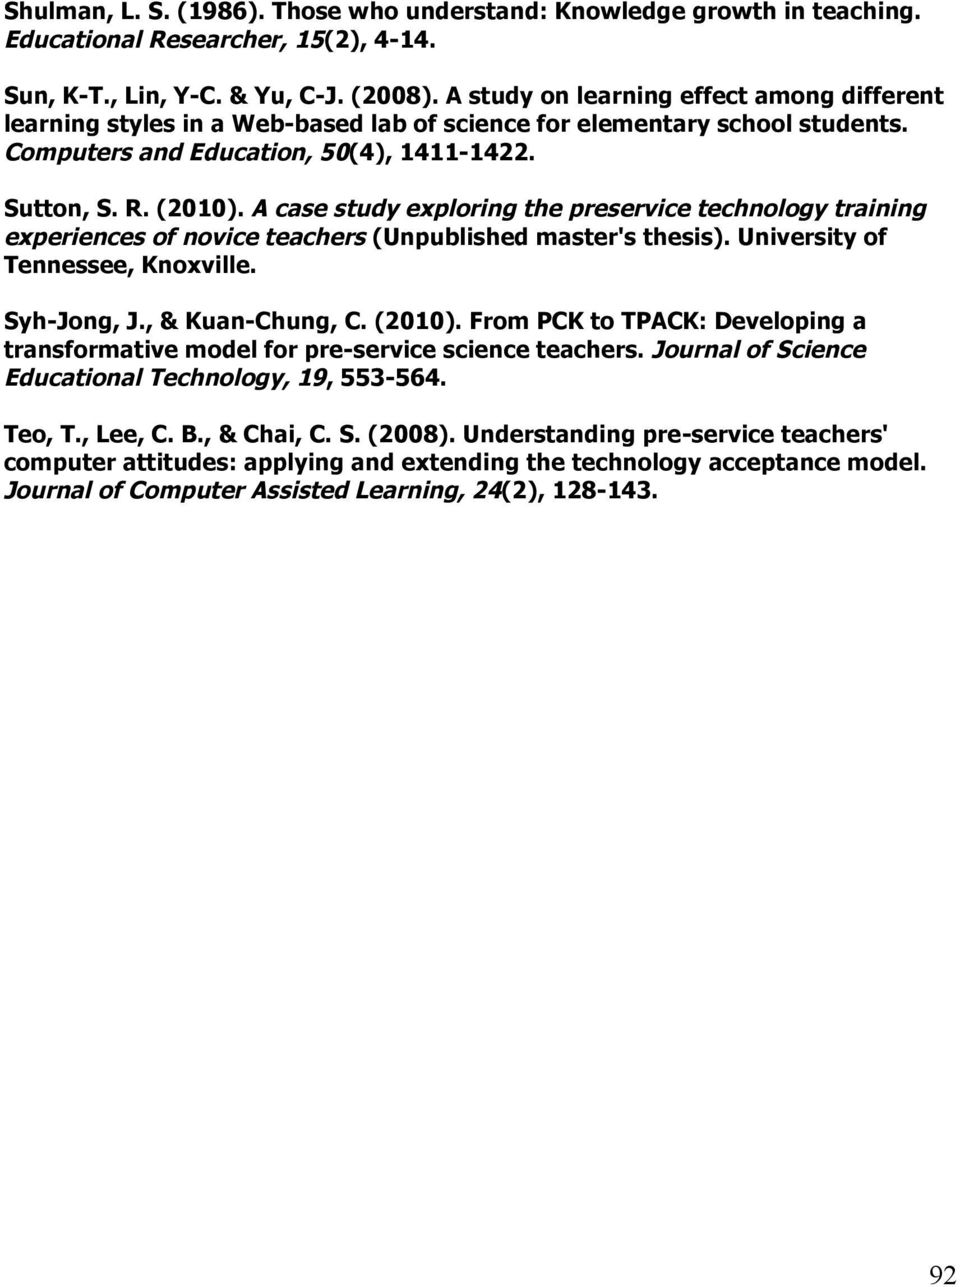 A case study exploring the preservice technology training experiences of novice teachers (Unpublished master's thesis). University of Tennessee, Knoxville. Syh-Jong, J., & Kuan-Chung, C. (2010).